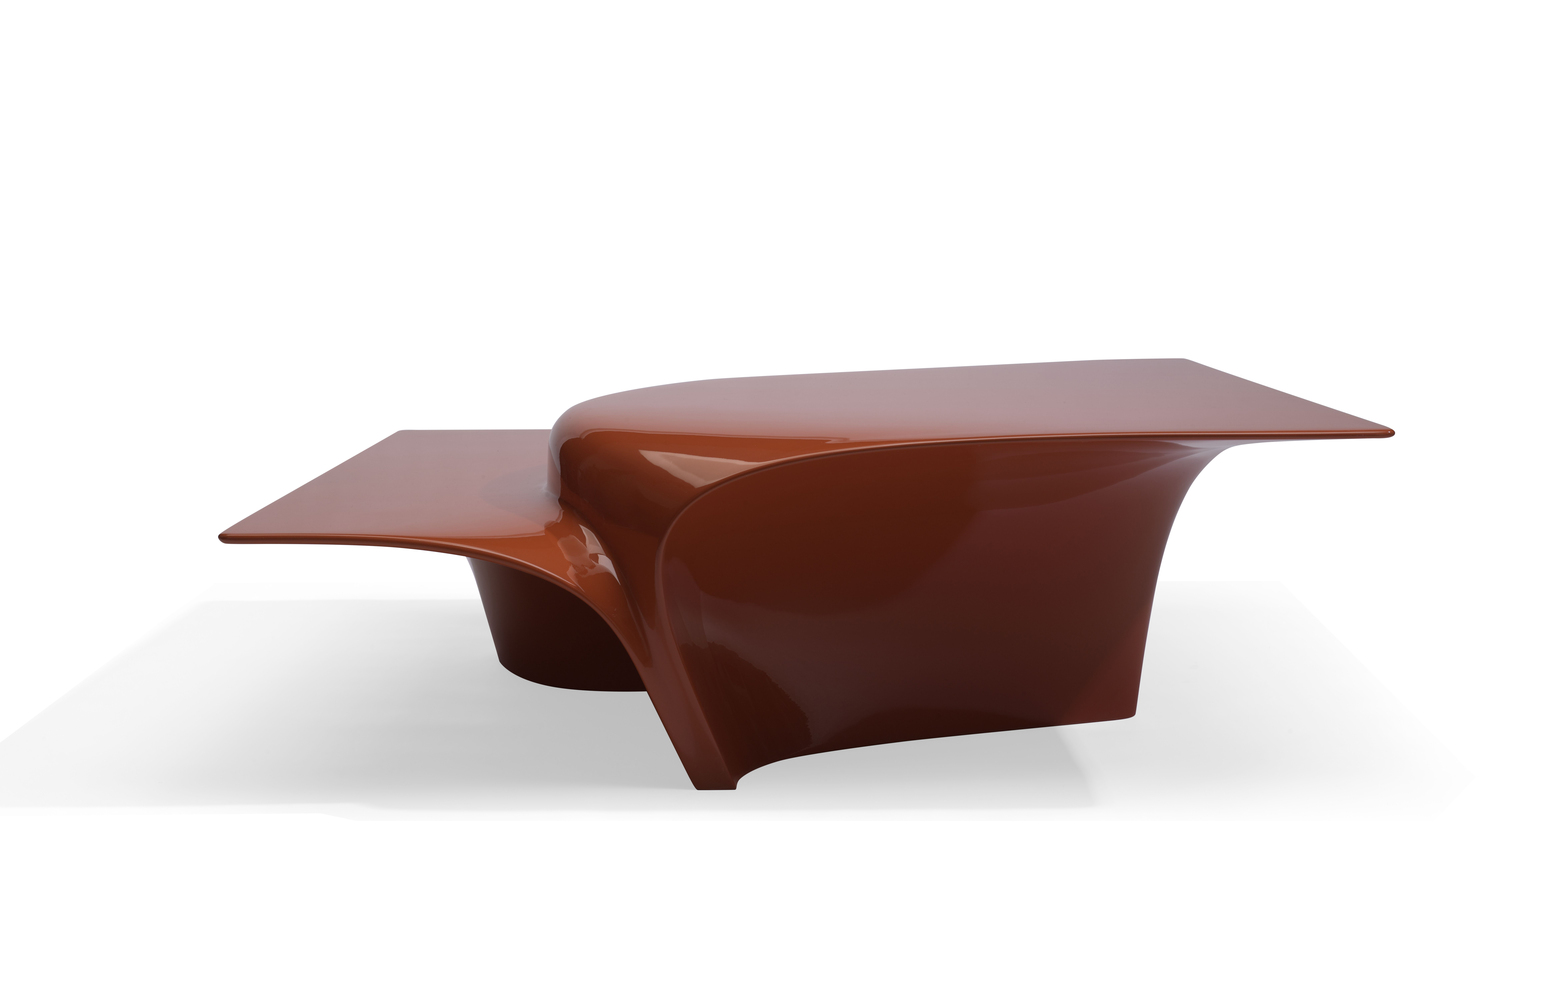 Mobile Coffee Table.Gallery Of Architect Designed Furniture Pieces At The 2019 Salone